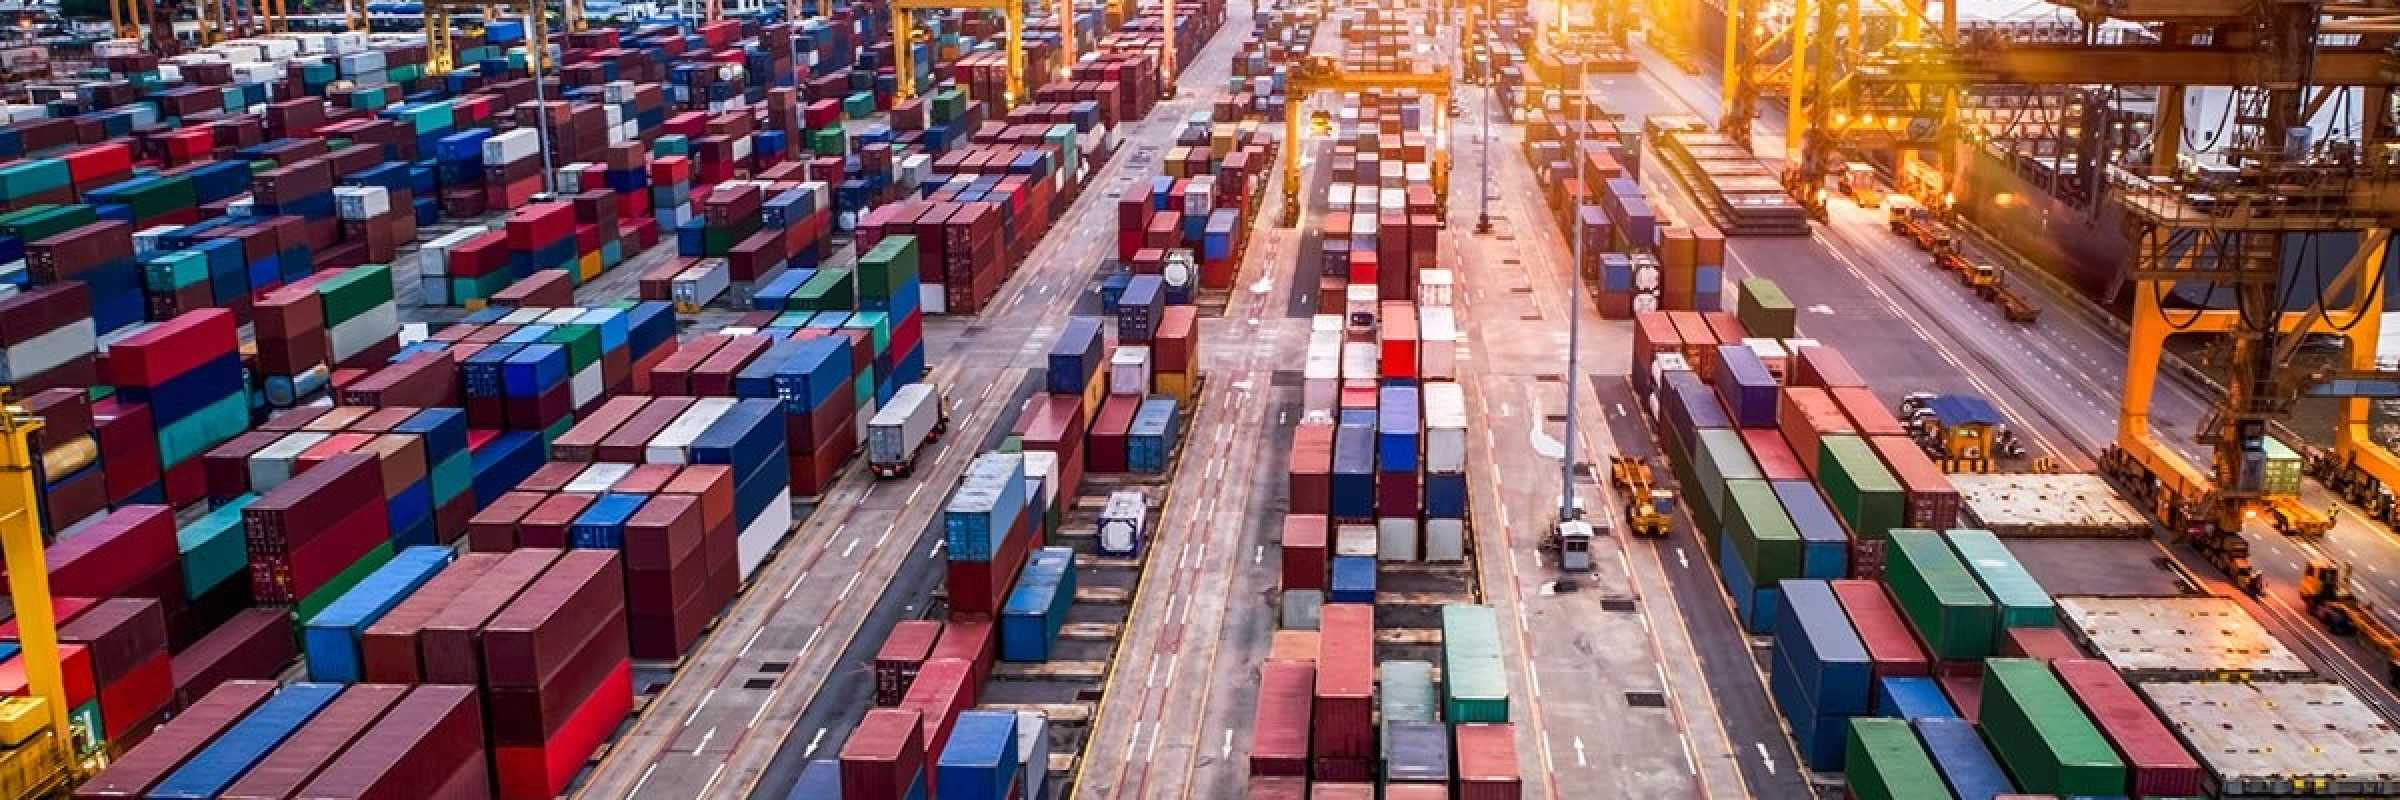 BoxTech database exceeds 11million containers following HMM fleet upload